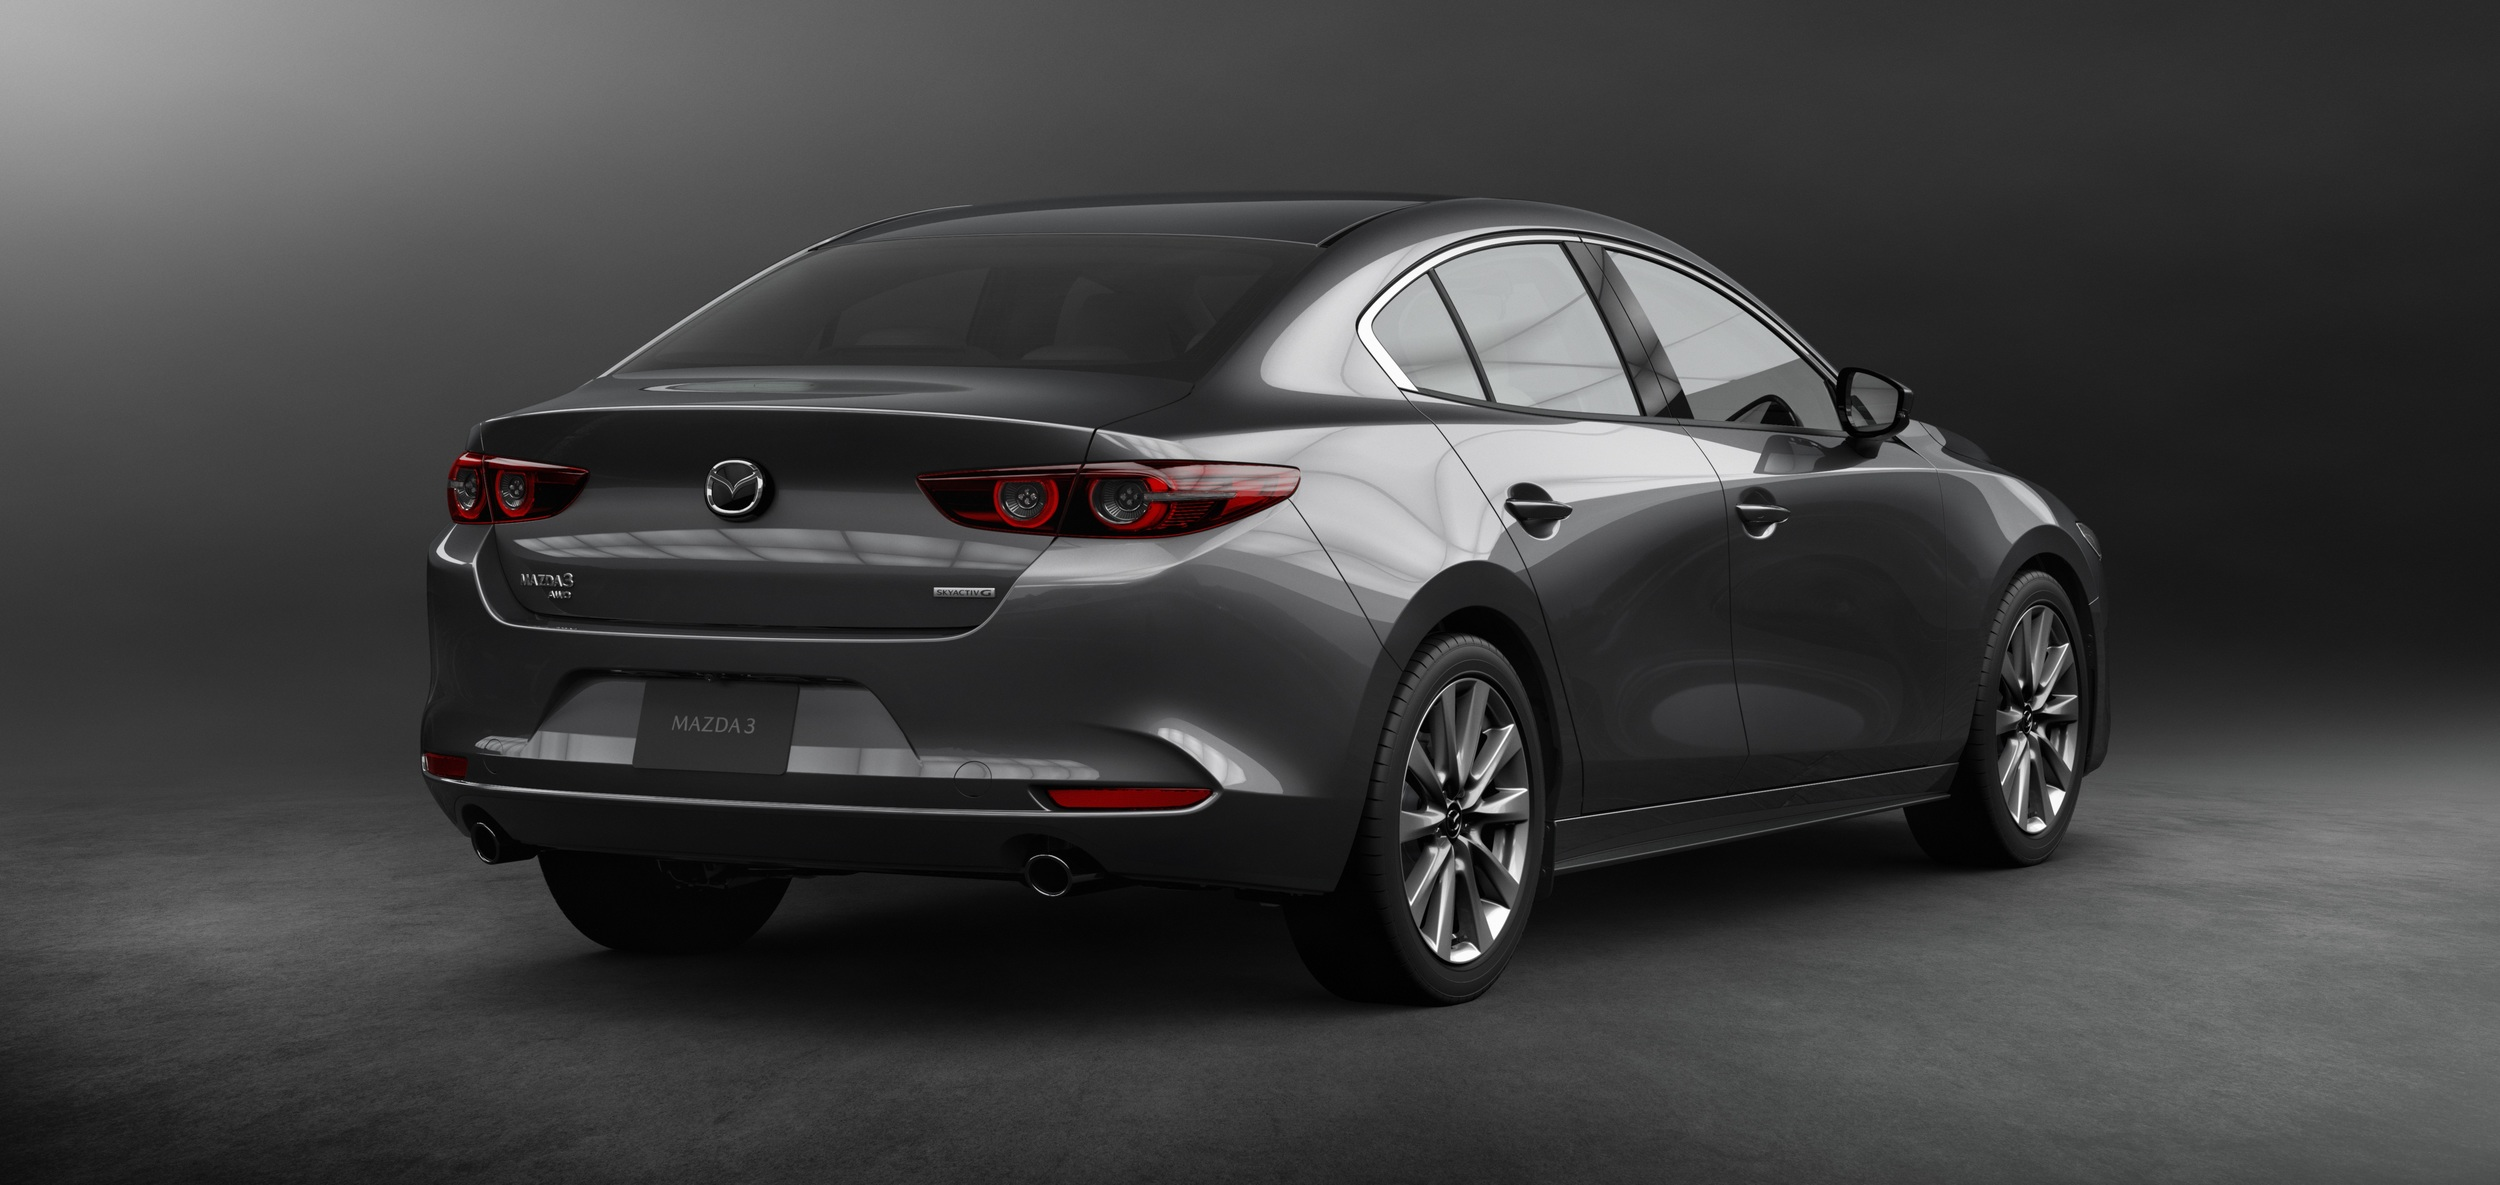 2019 Mazda3 Photo Gallery Autoblog